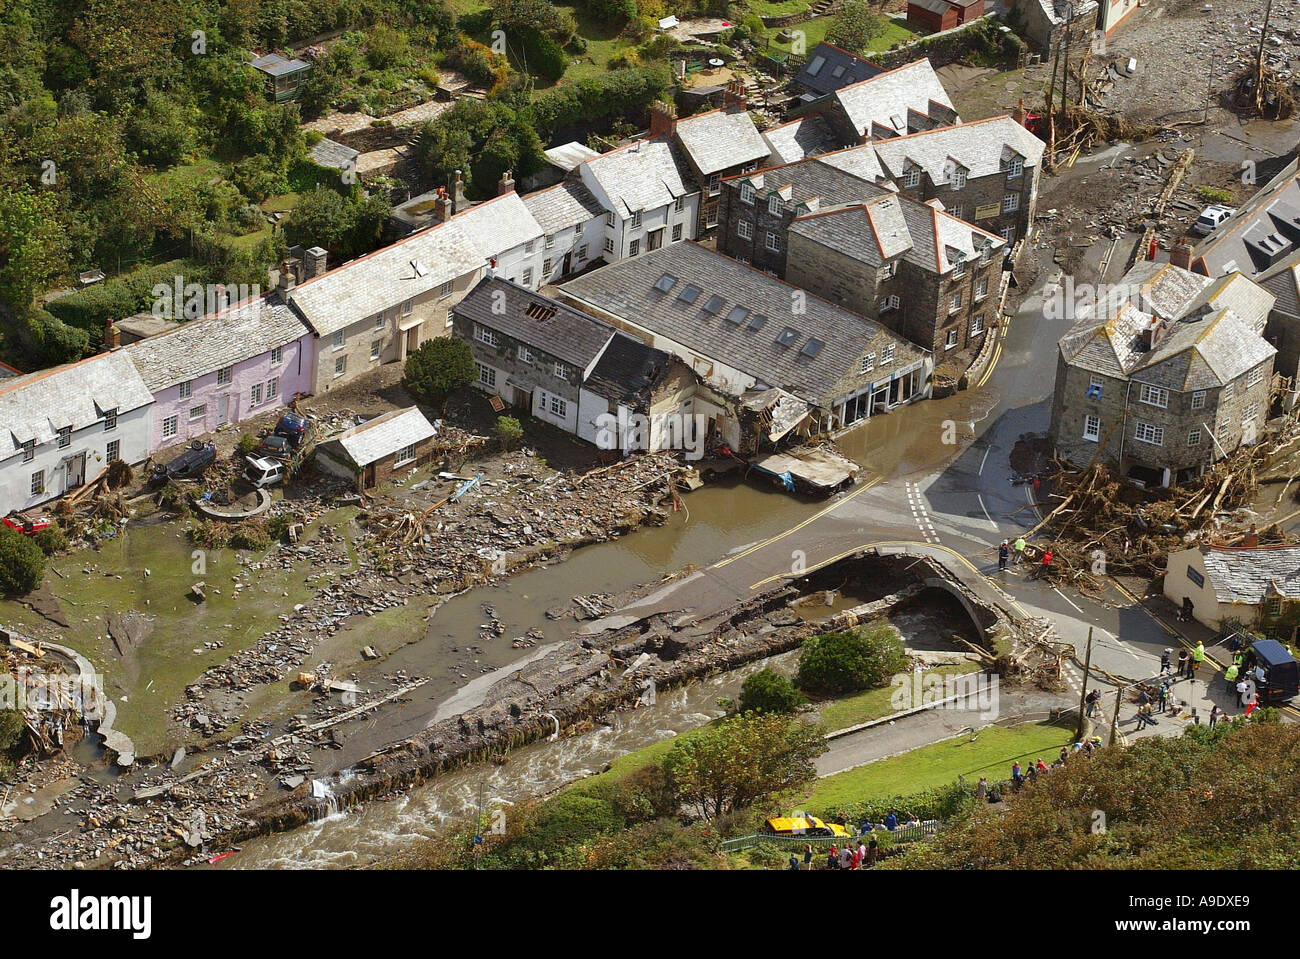 17 08 2004 The scene at Boscastle this morning after yesterdays devastating flood - Stock Image